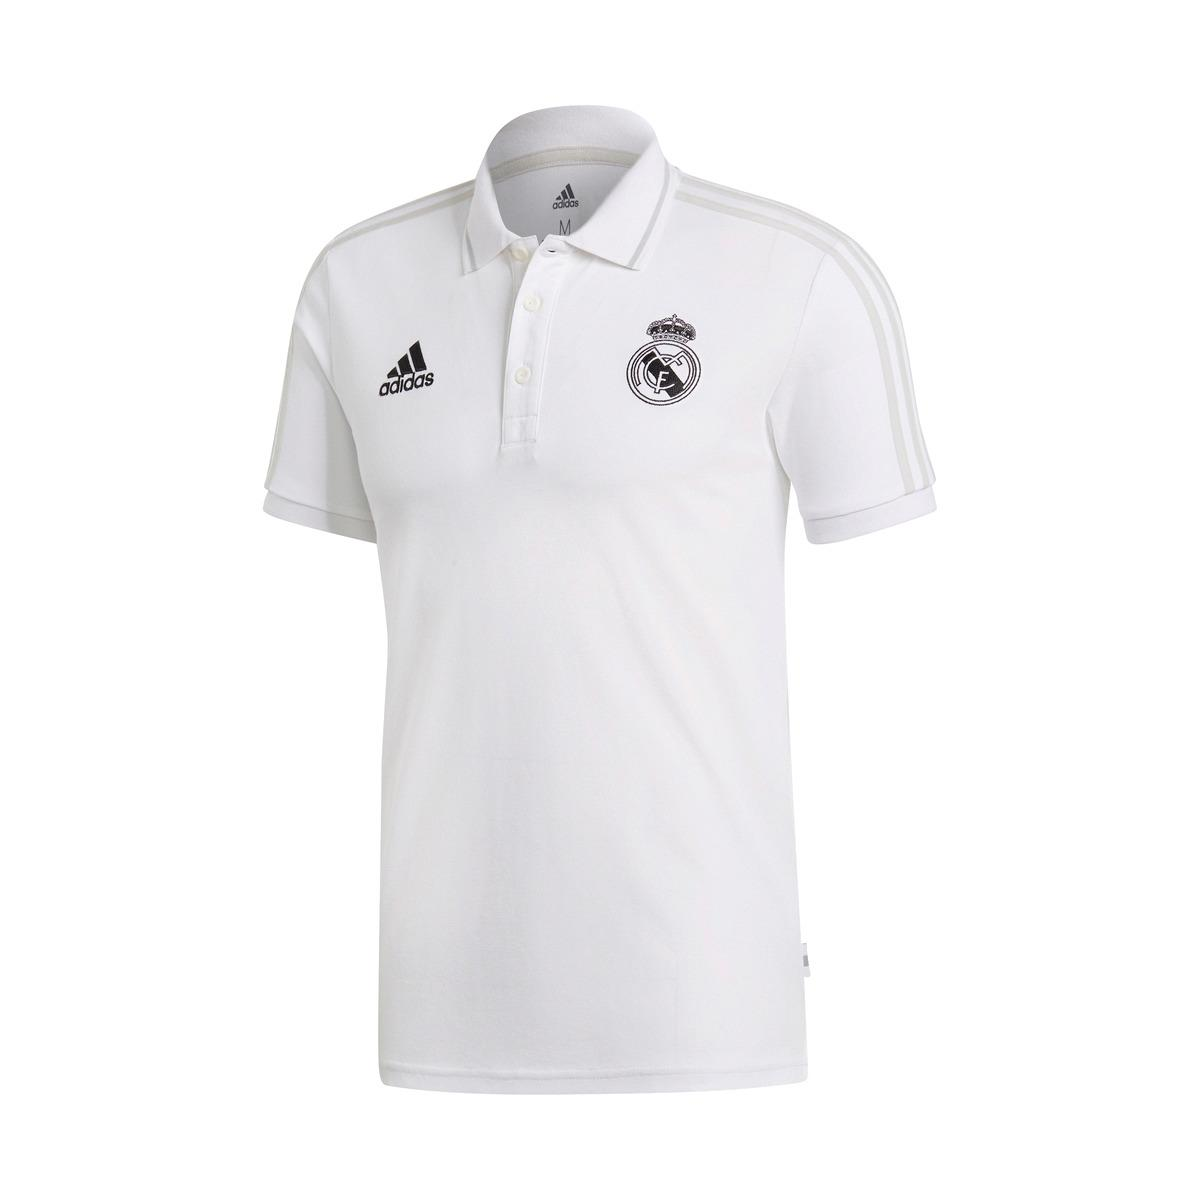 2383a801 adidas Real Madrid Cf 2018-2019 Polo Shirt in White for Men - Lyst